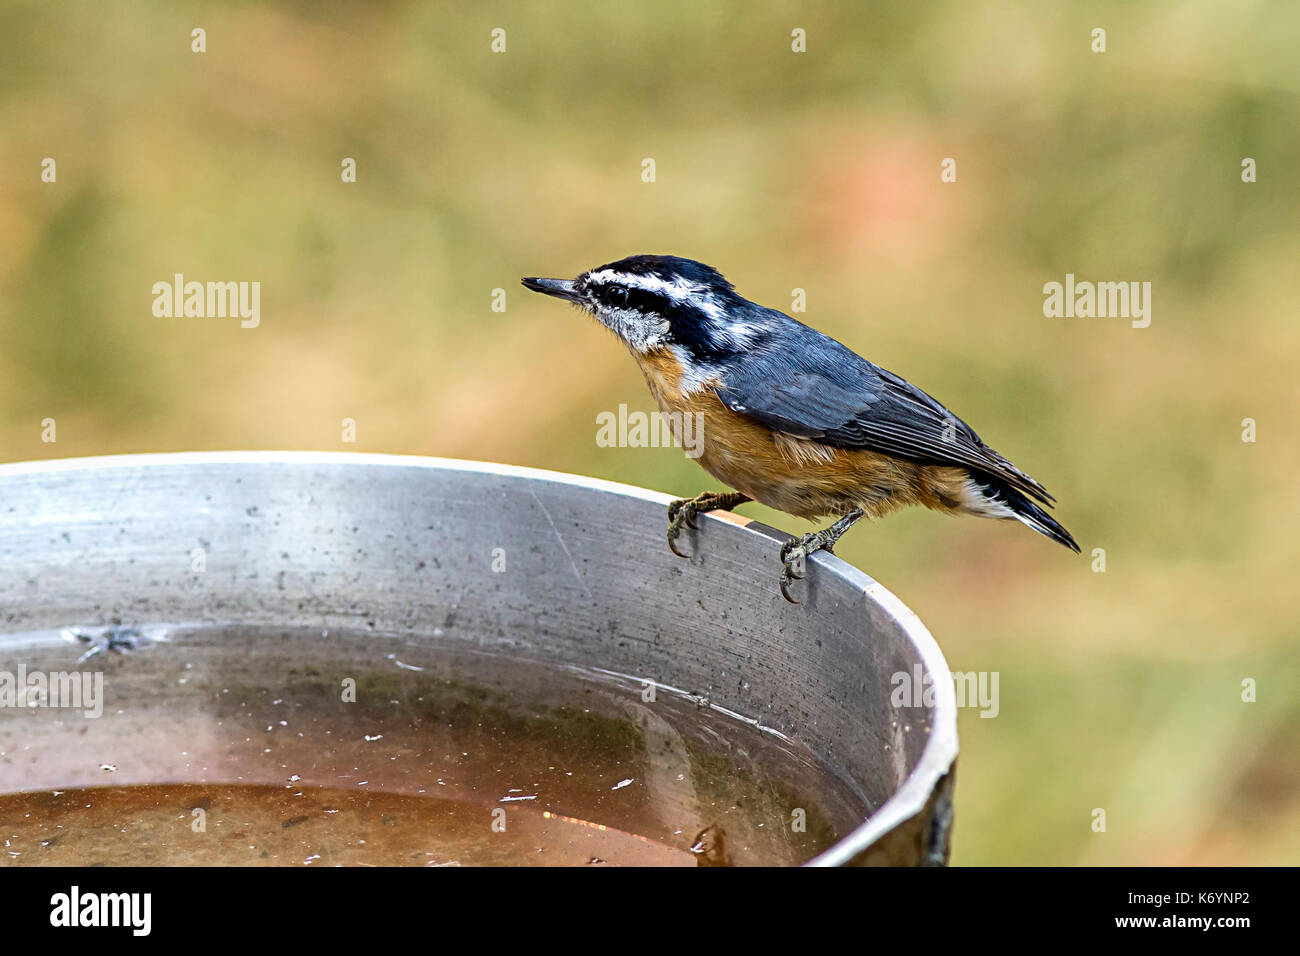 A small cute mountain chickadee perched on the side of a bird bath. - Stock Image